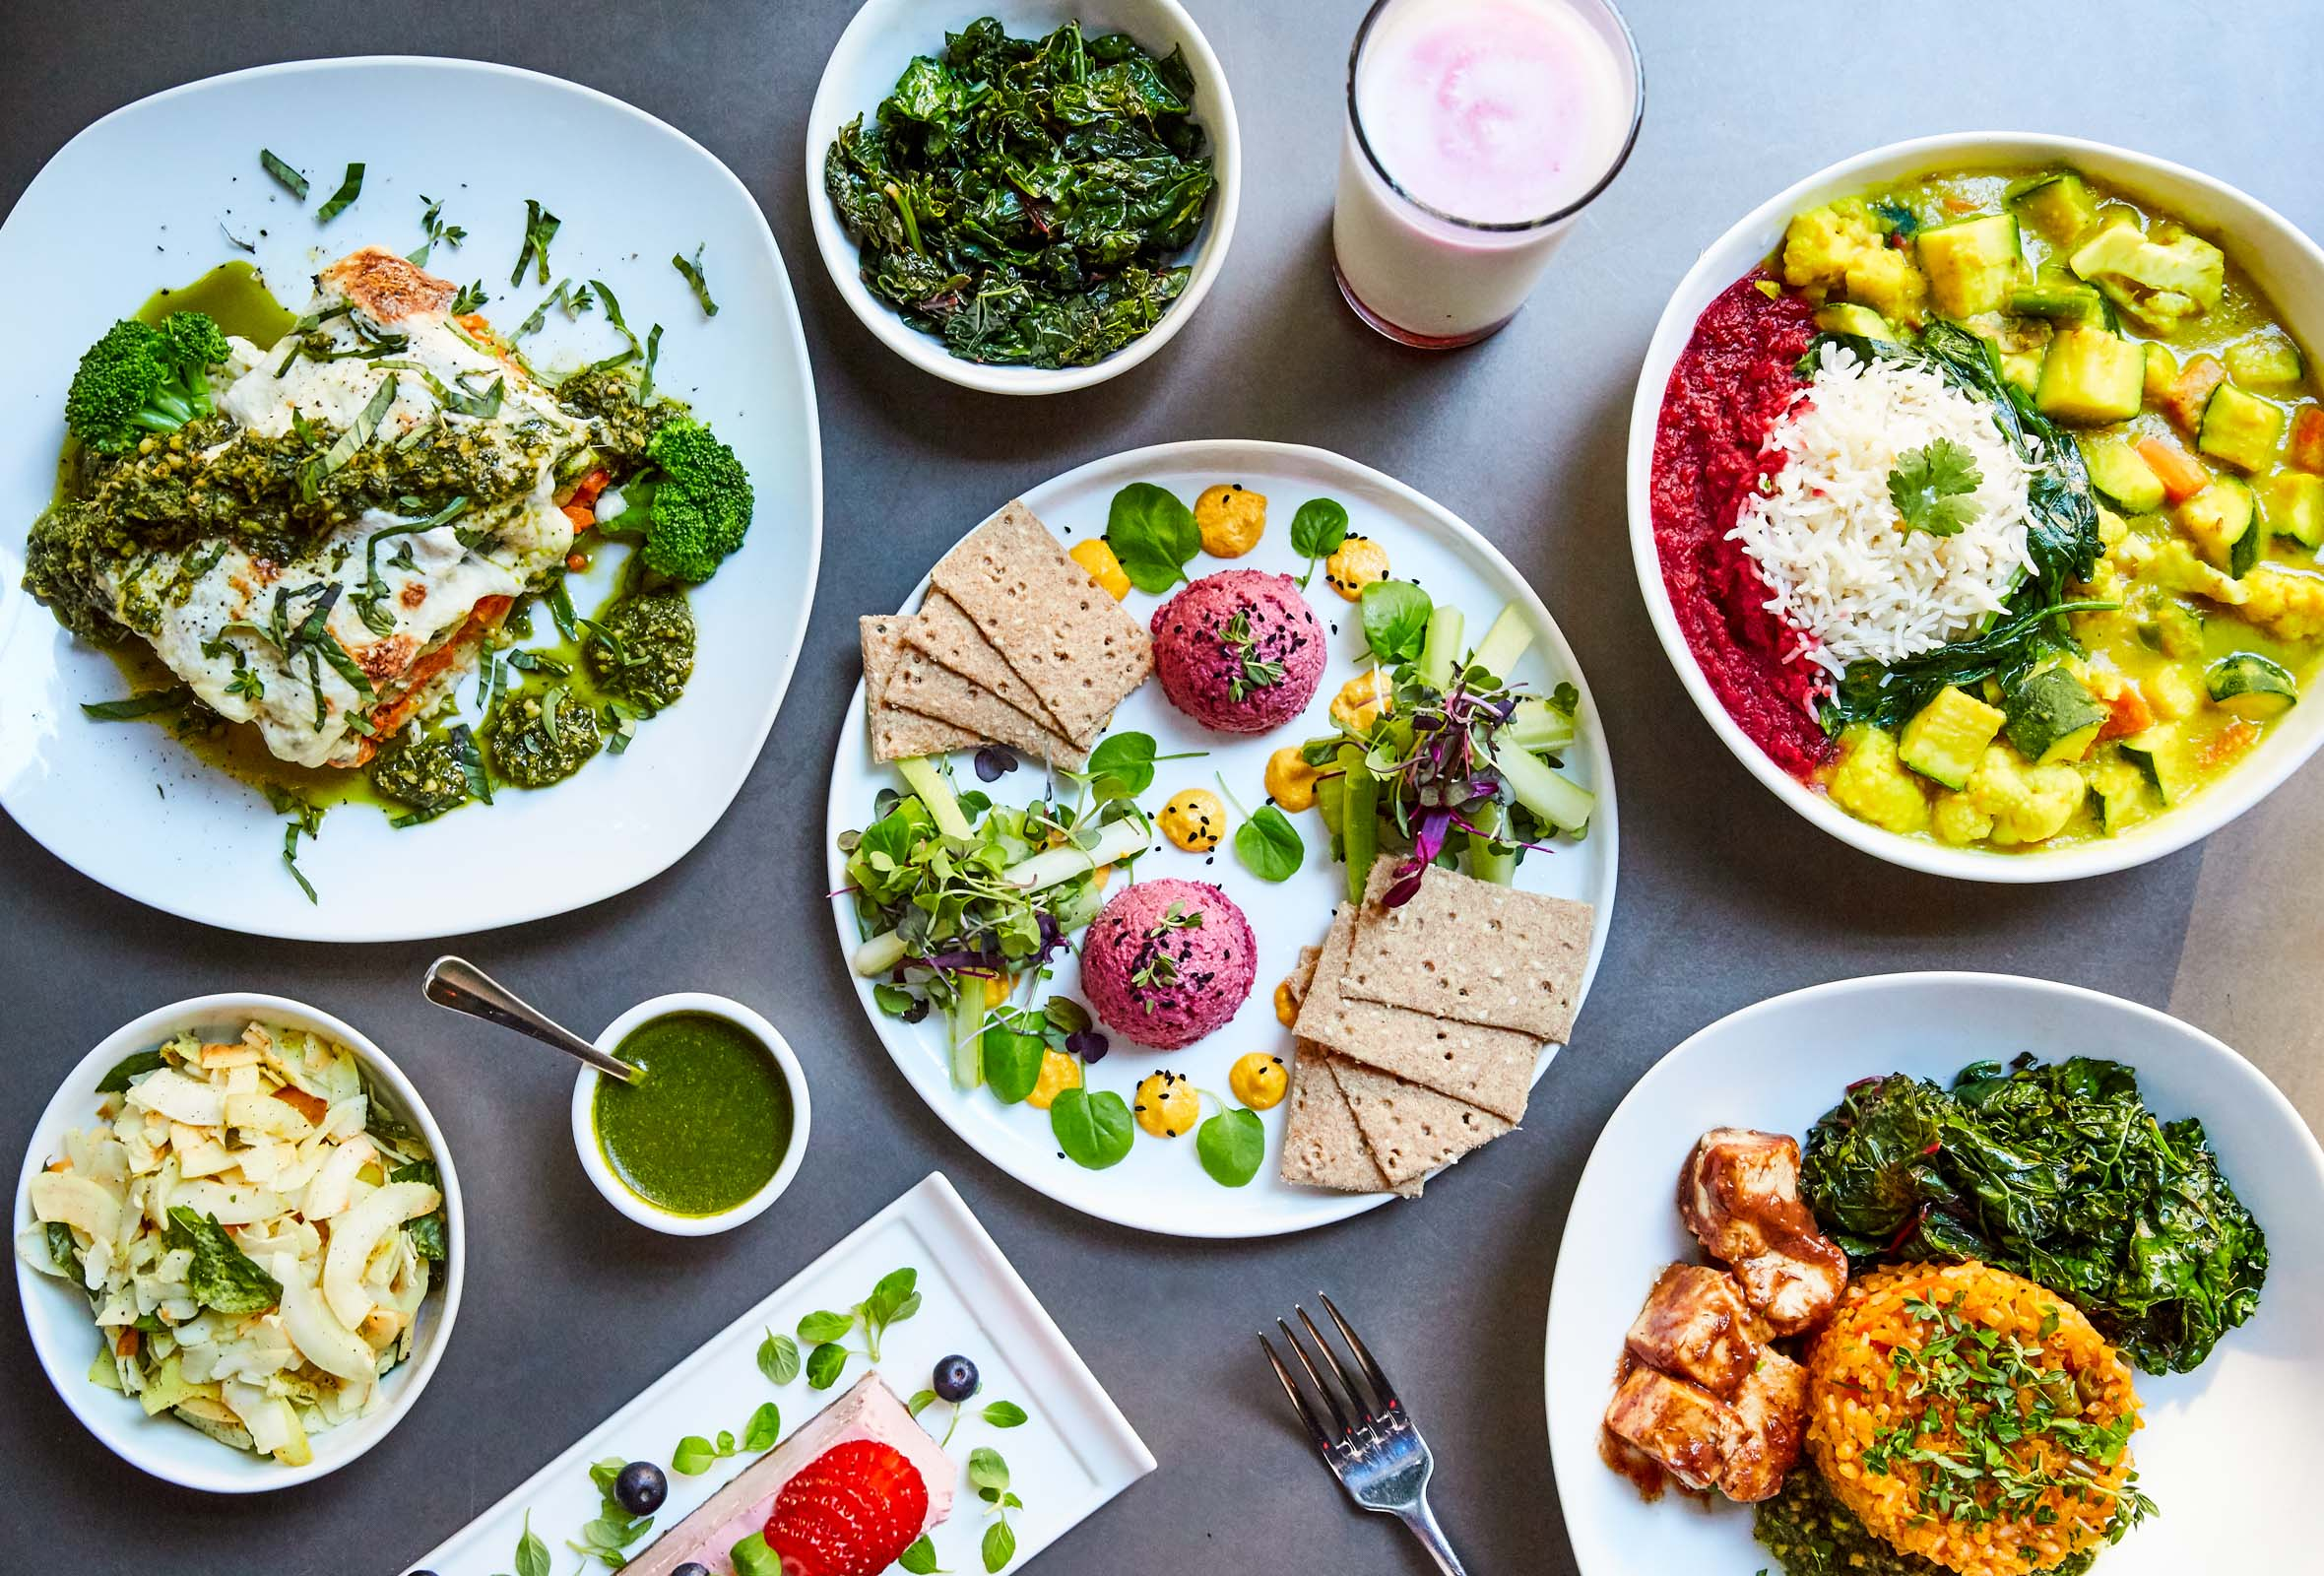 Choose Whatever You Like at Divya's Kitchen – From Brunch to Healthy Lunch and 3-Course Dinner